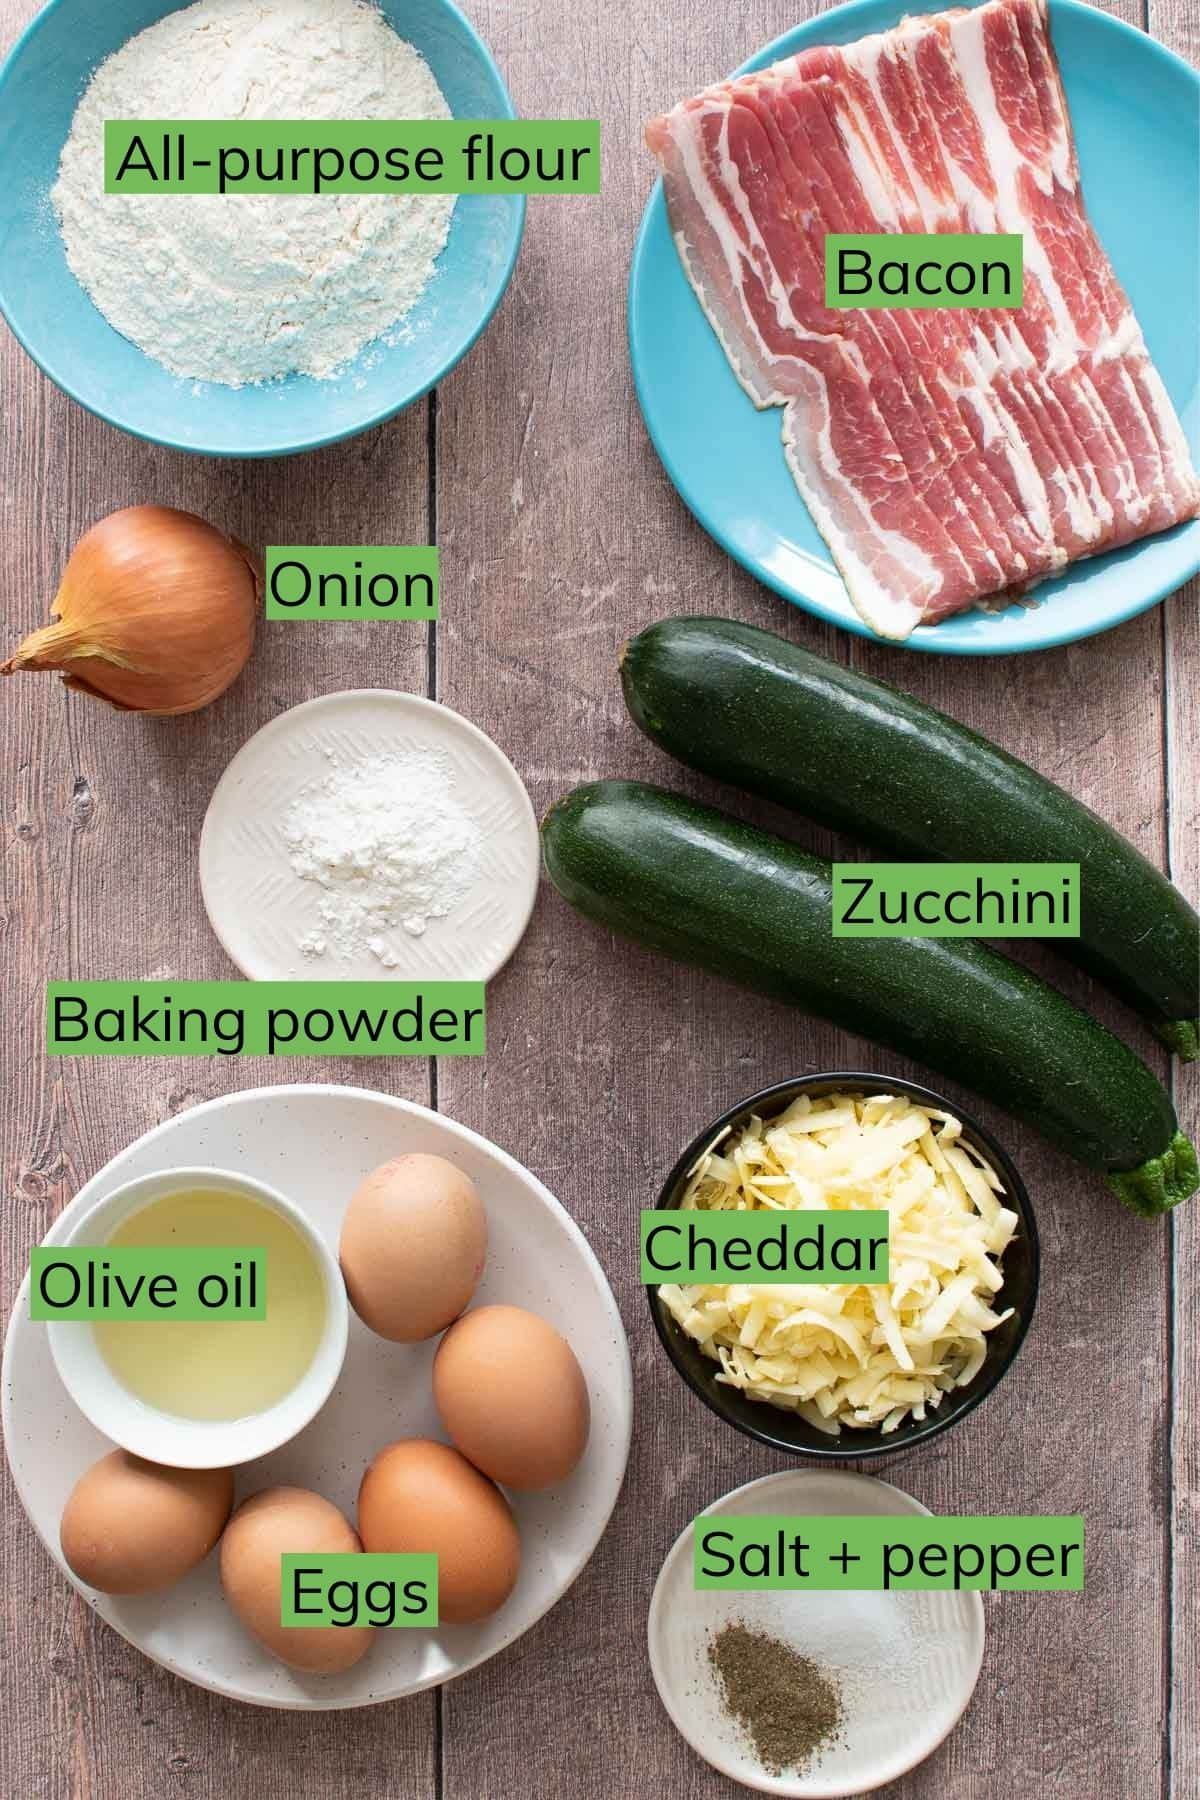 Ingredients needed to make zucchini slice laid out on a table.